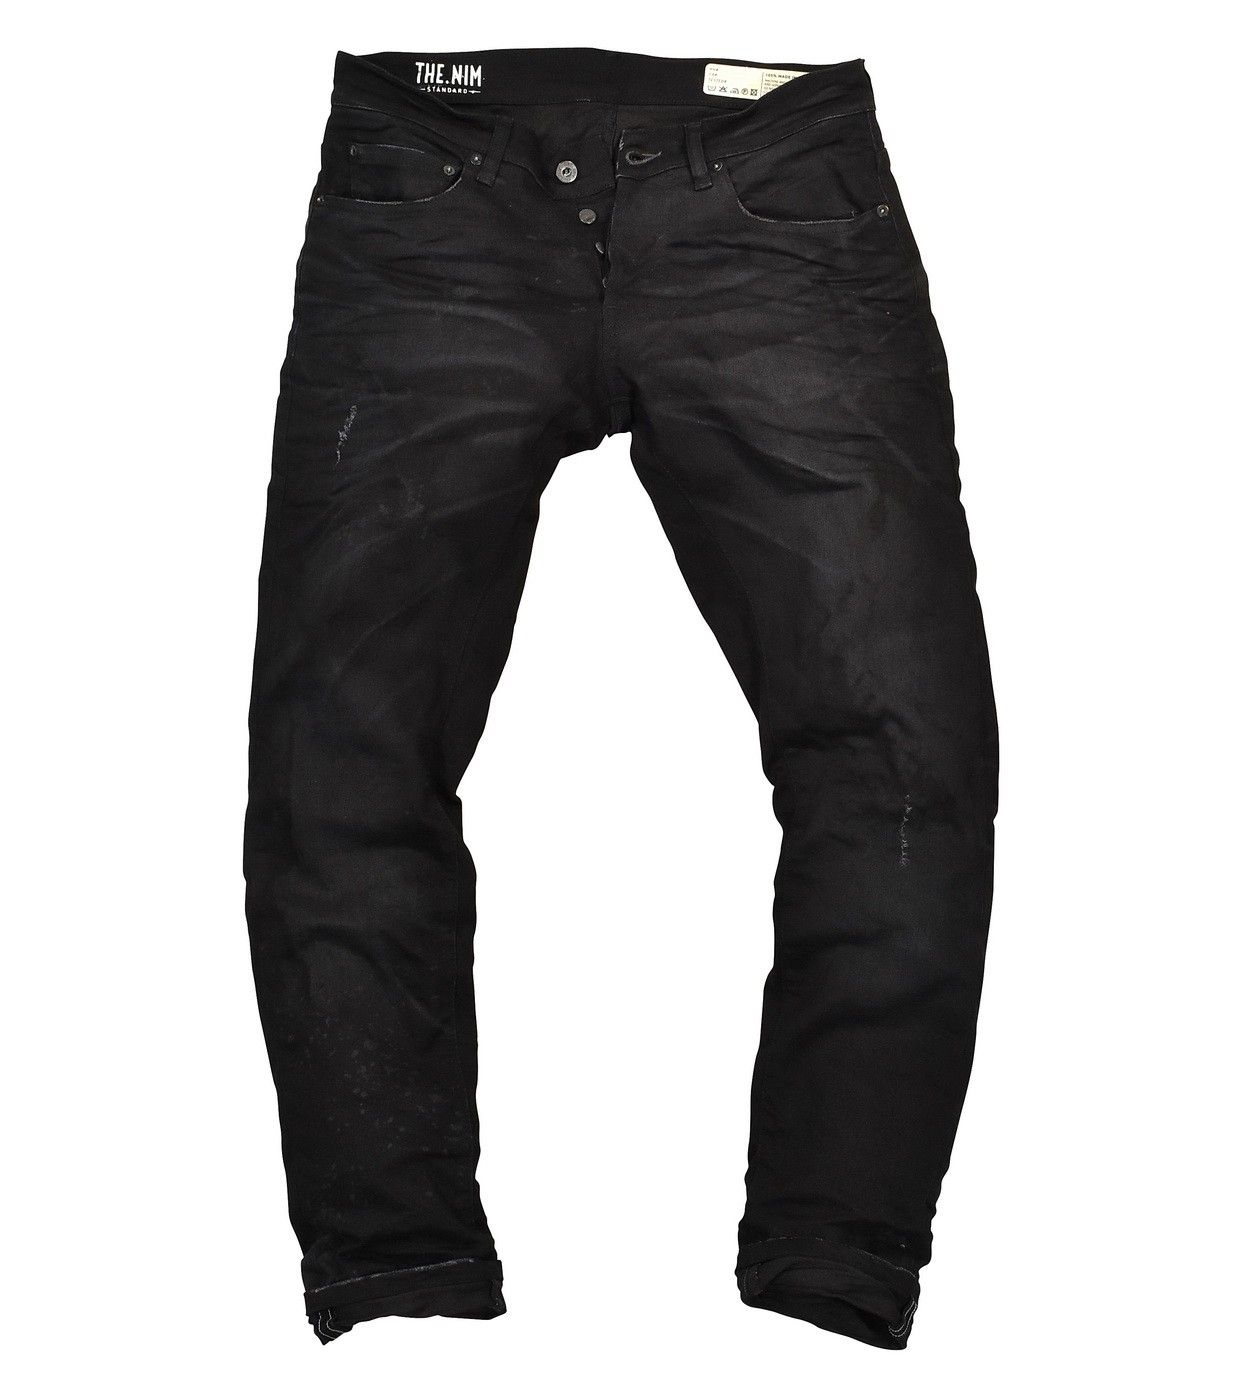 THE NIM - Herren Jeans - Dylan Slim Fit Jeans - Damaged